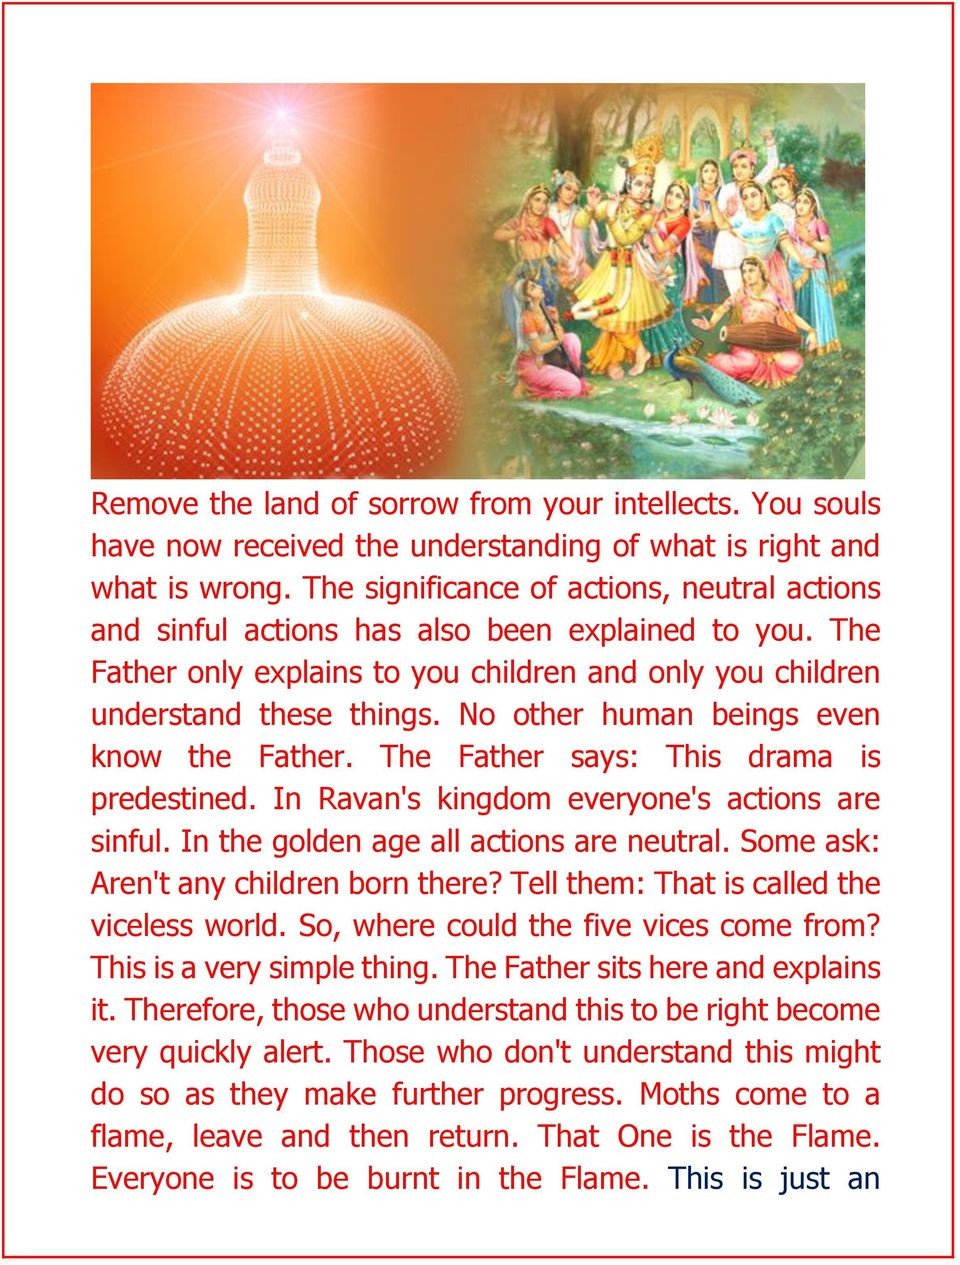 No other human beings even know the Father. The Father says: This drama is predestined. In Ravan's kingdom everyone's actions are sinful. In the golden age all actions are neutral.